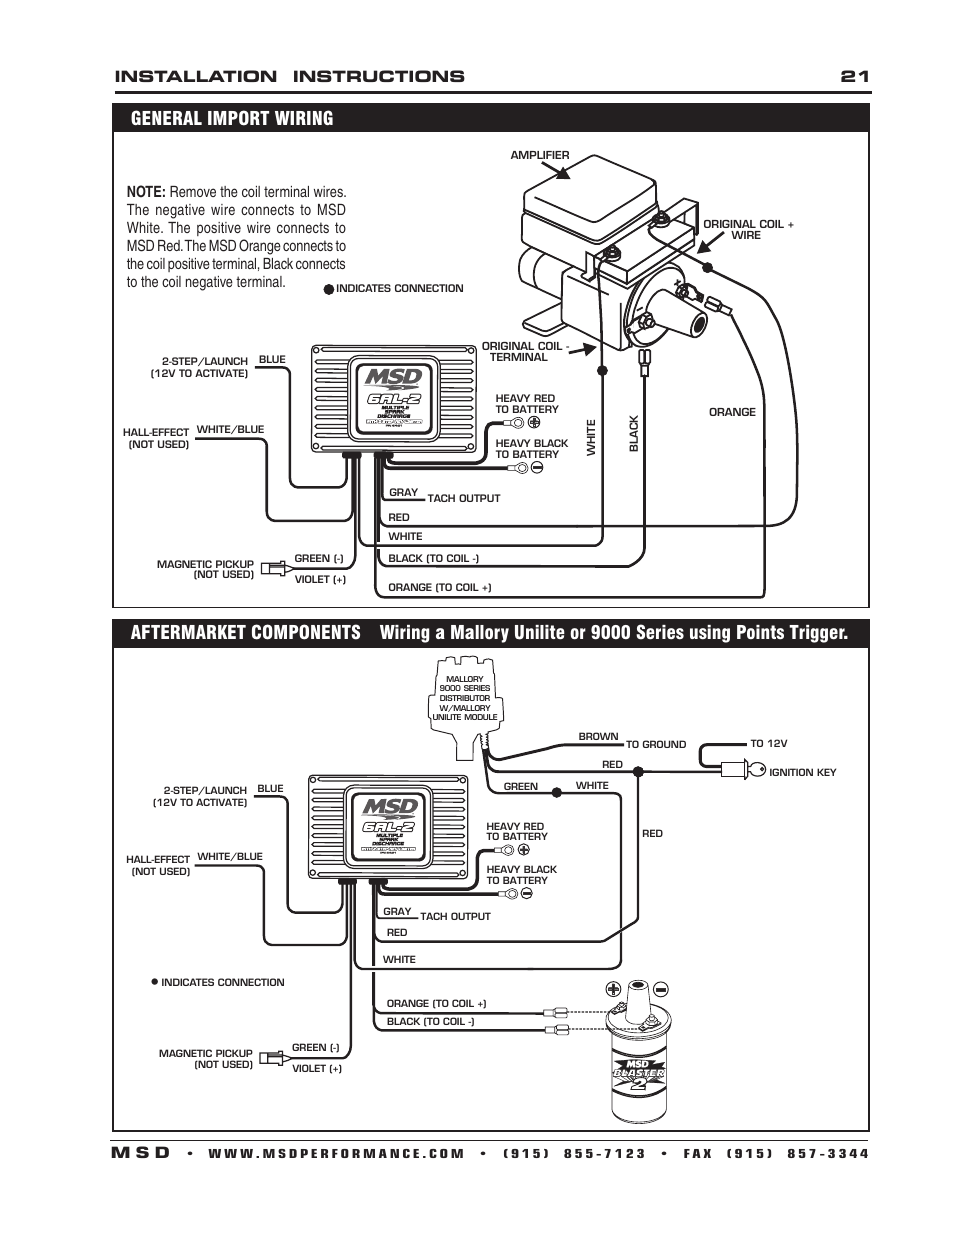 mallory distributor with msd wiring diagram